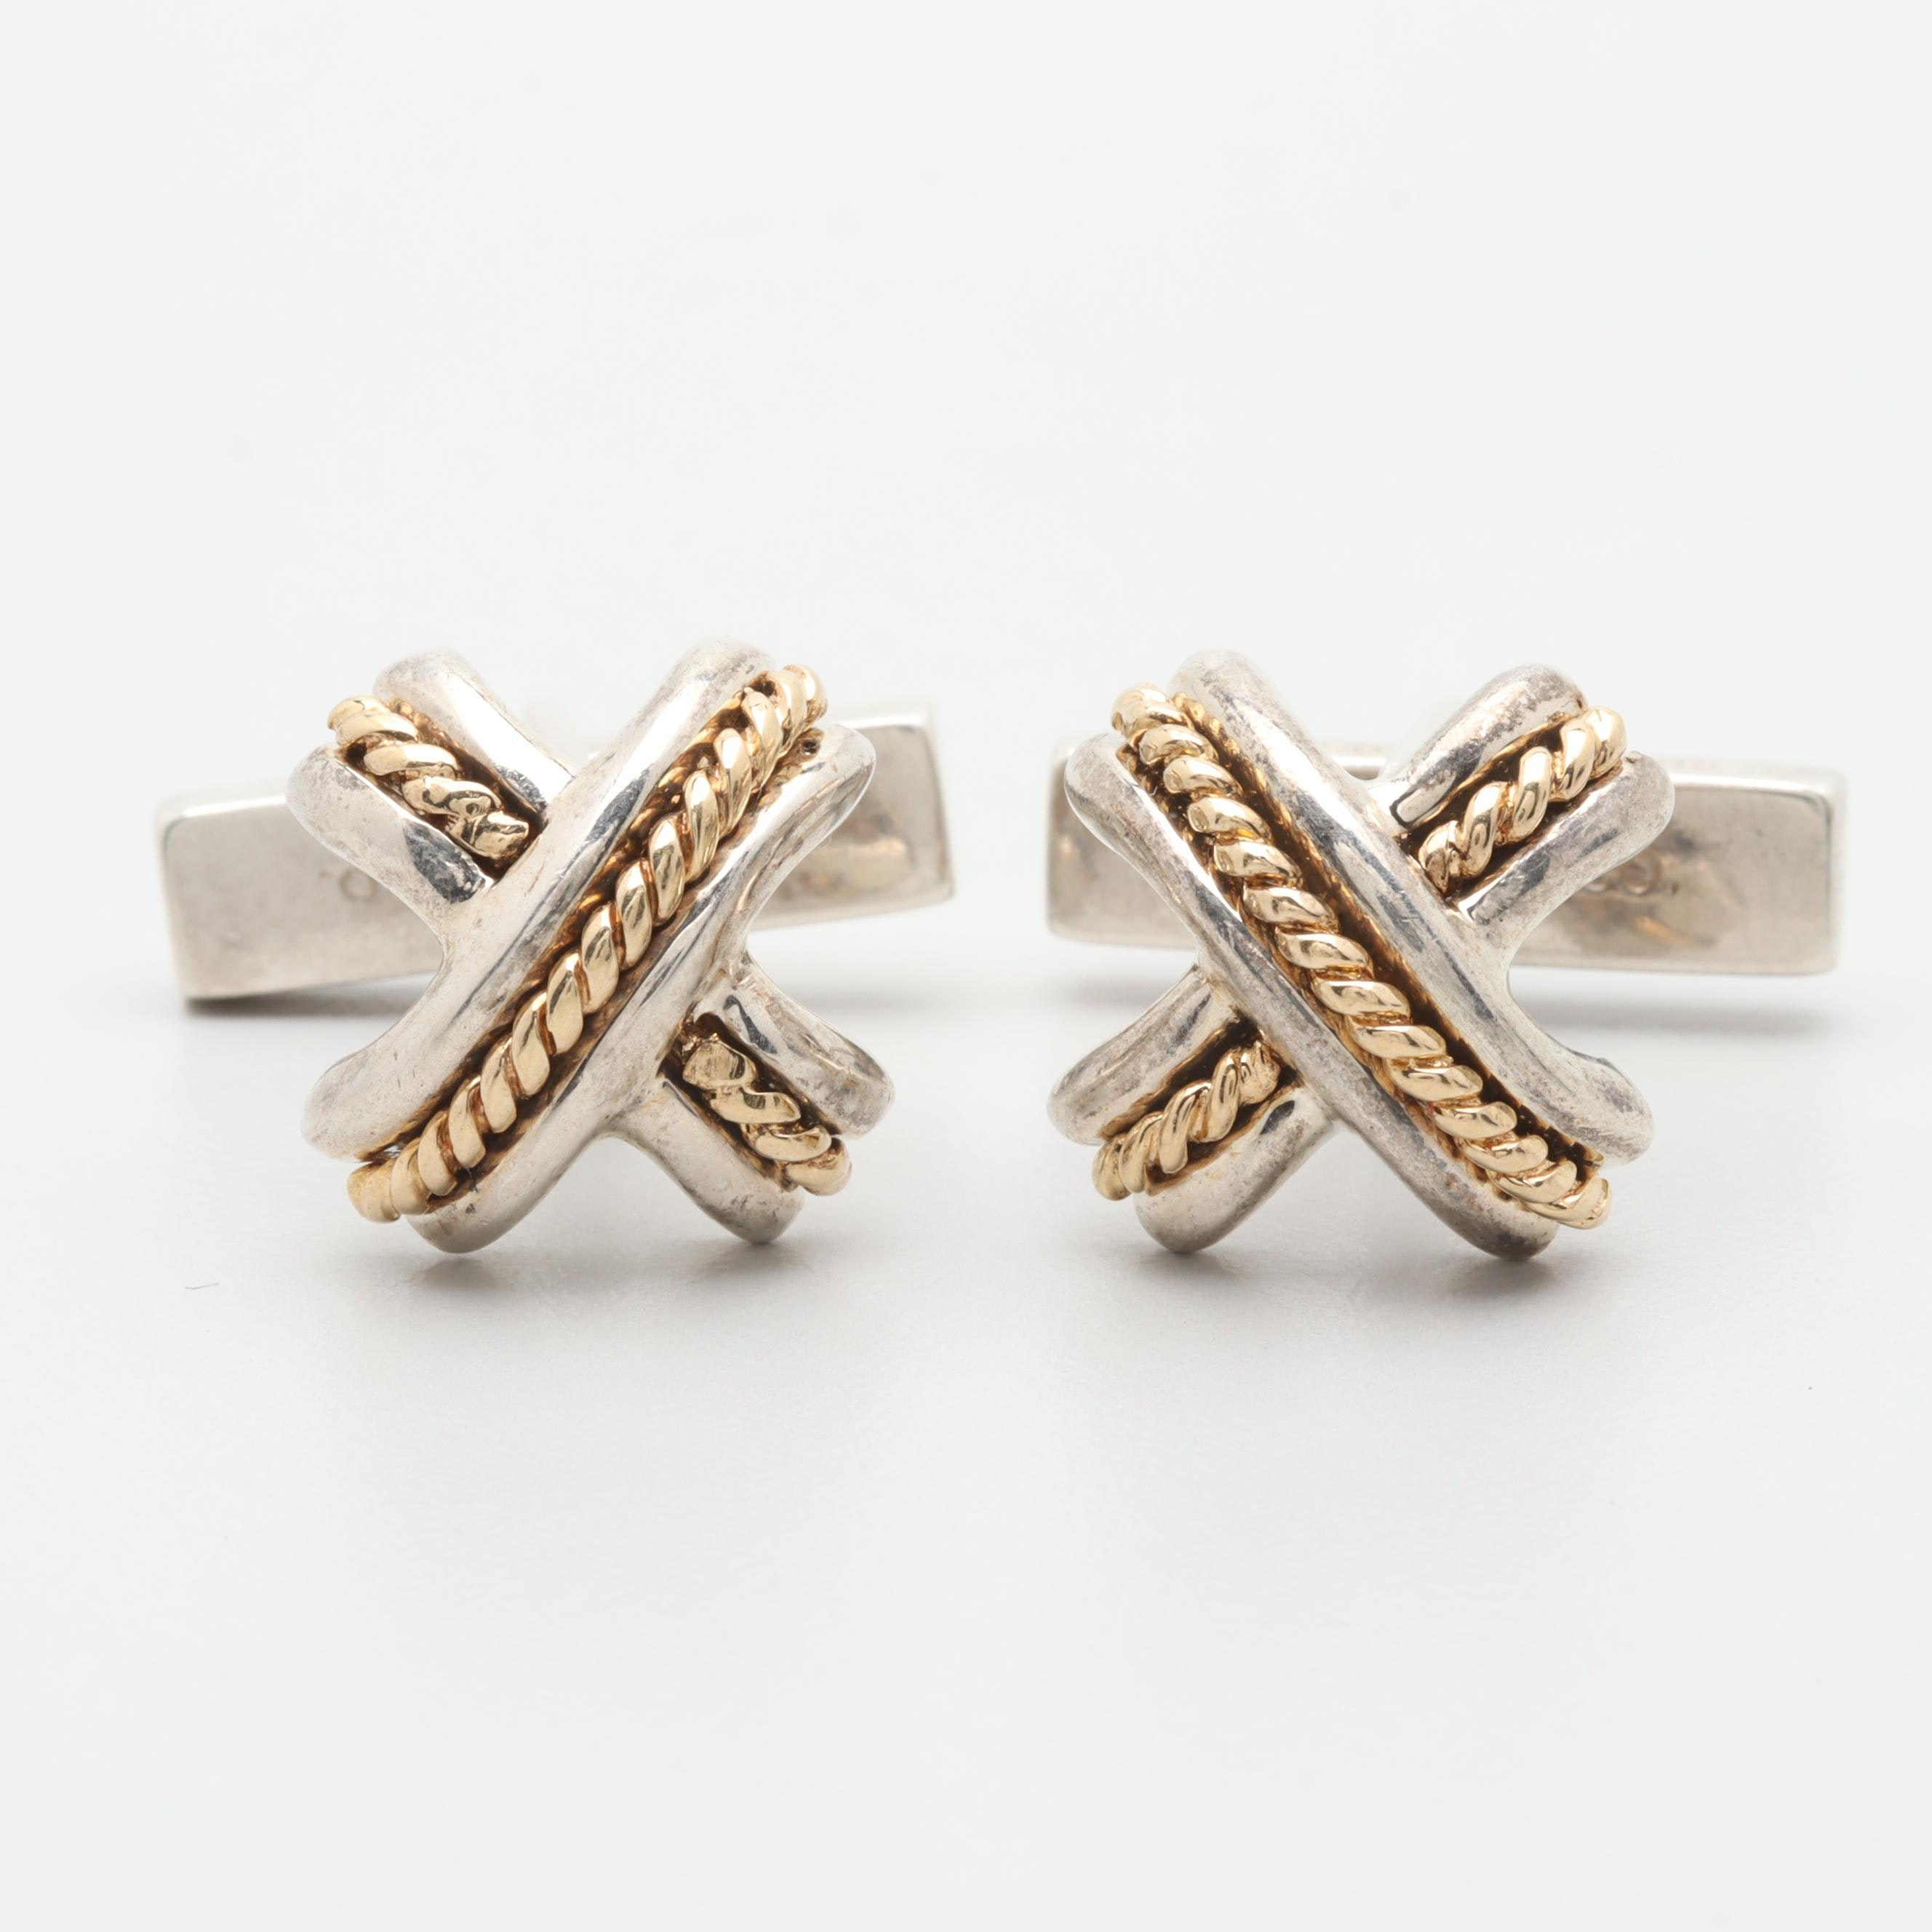 Tiffany & Co. Sterling Silver Cufflinks with 18K Yellow Gold Accents